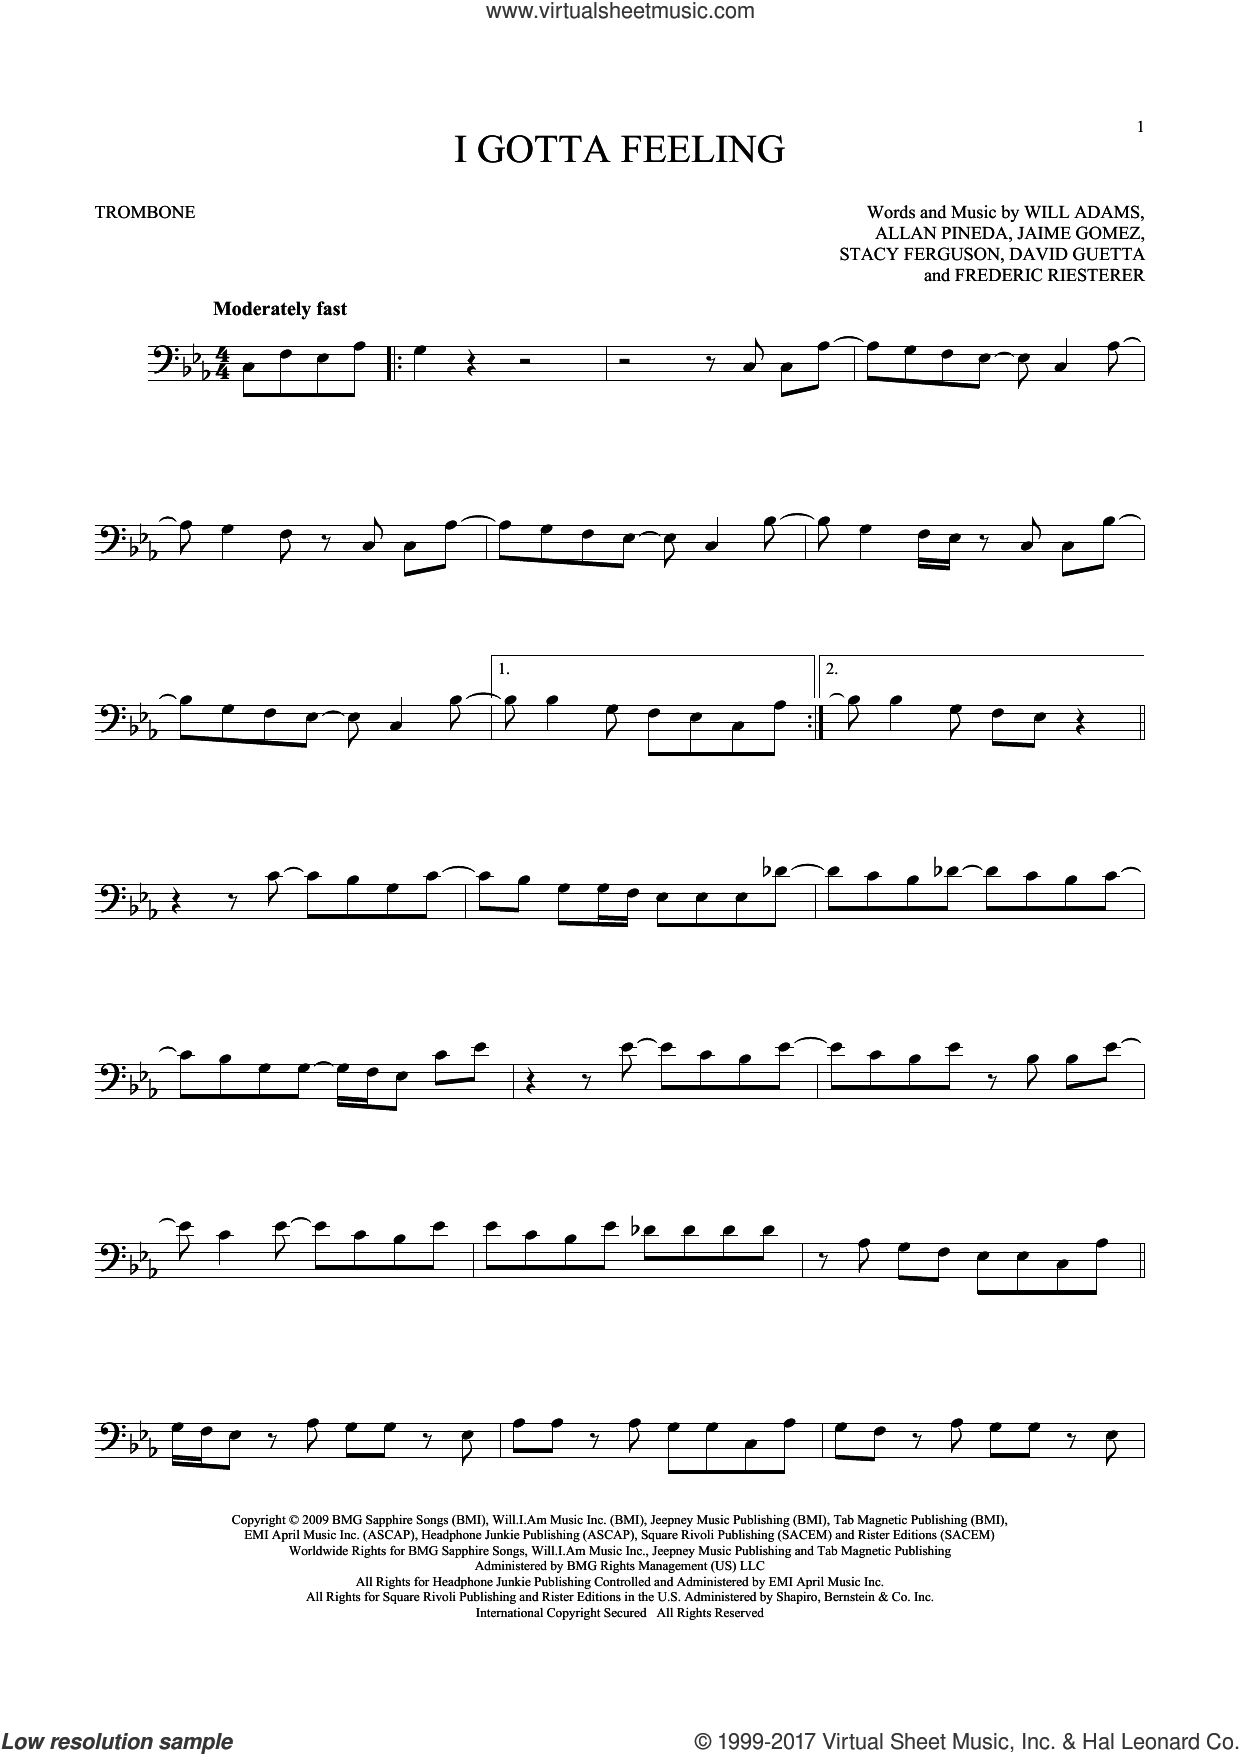 I Gotta Feeling sheet music for trombone solo by Will Adams, Black Eyed Peas, Allan Pineda, David Guetta, Frederic Riesterer, Jaime Gomez and Stacy Ferguson, intermediate skill level